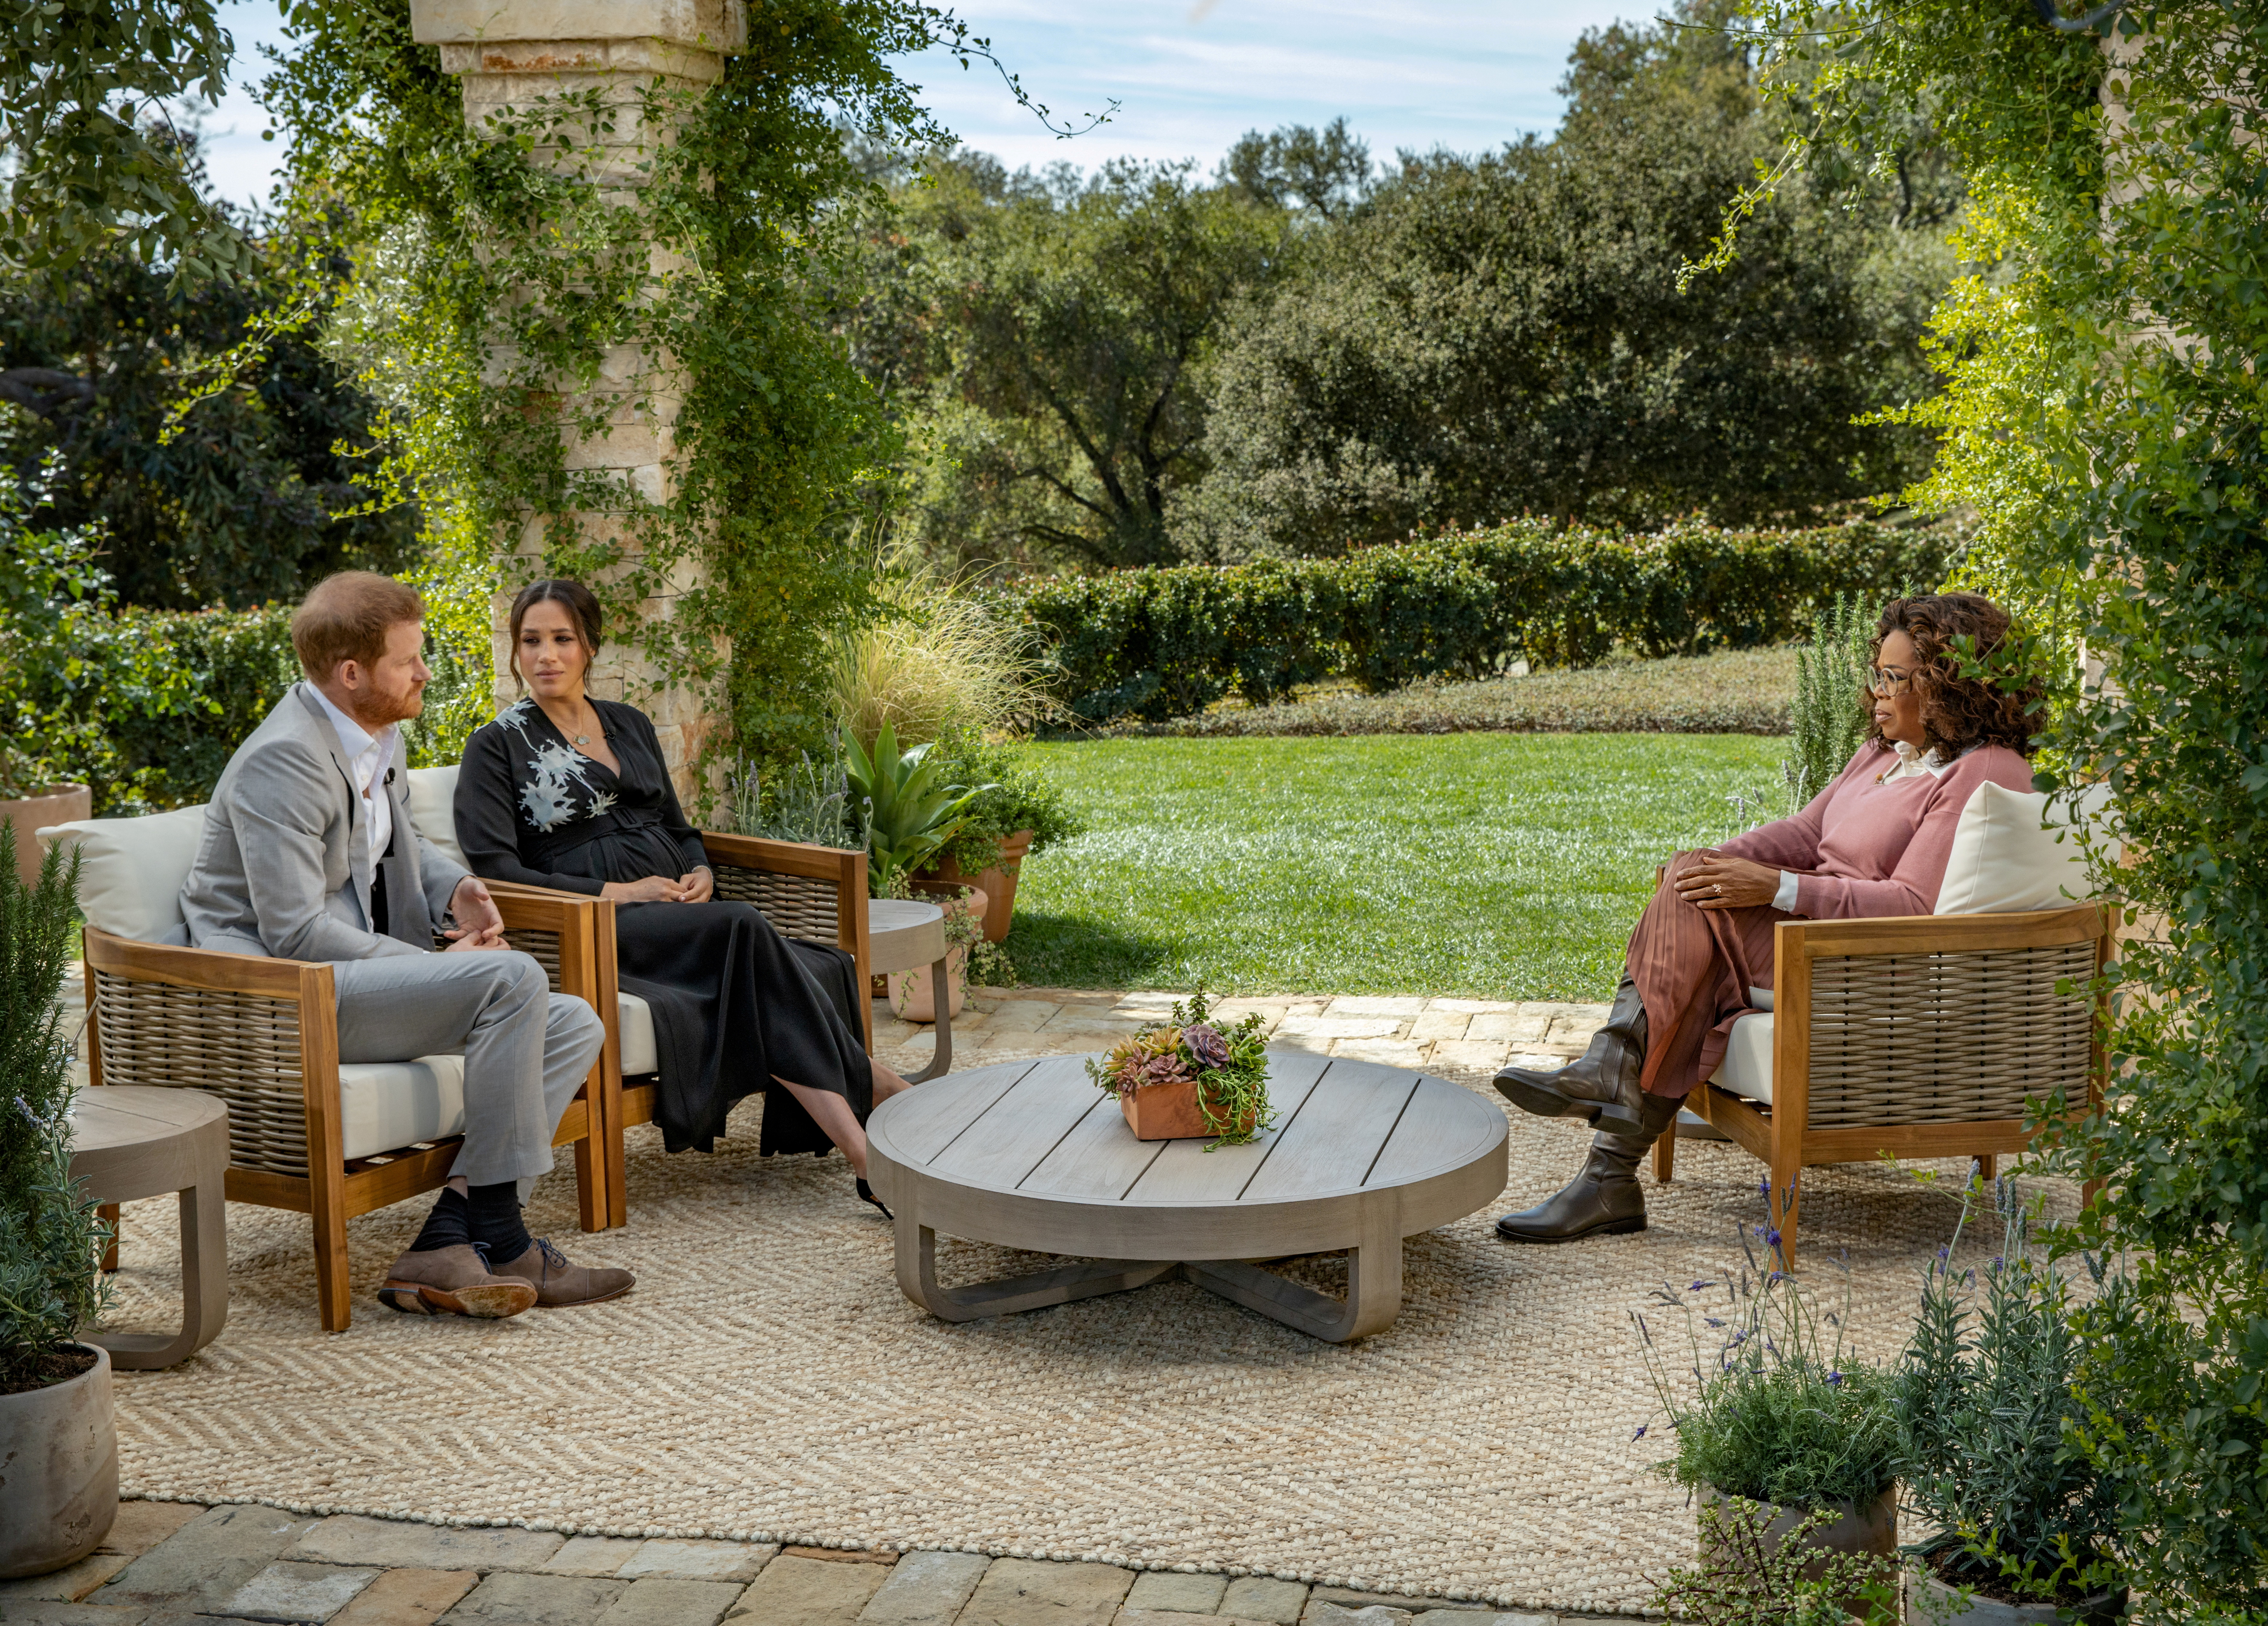 Britain's Prince Harry and Meghan, Duchess of Sussex, are interviewed by Oprah Winfrey in this undated handout photo.  Harpo Productions/Joe Pugliese/Handout via REUTERS/File Photo